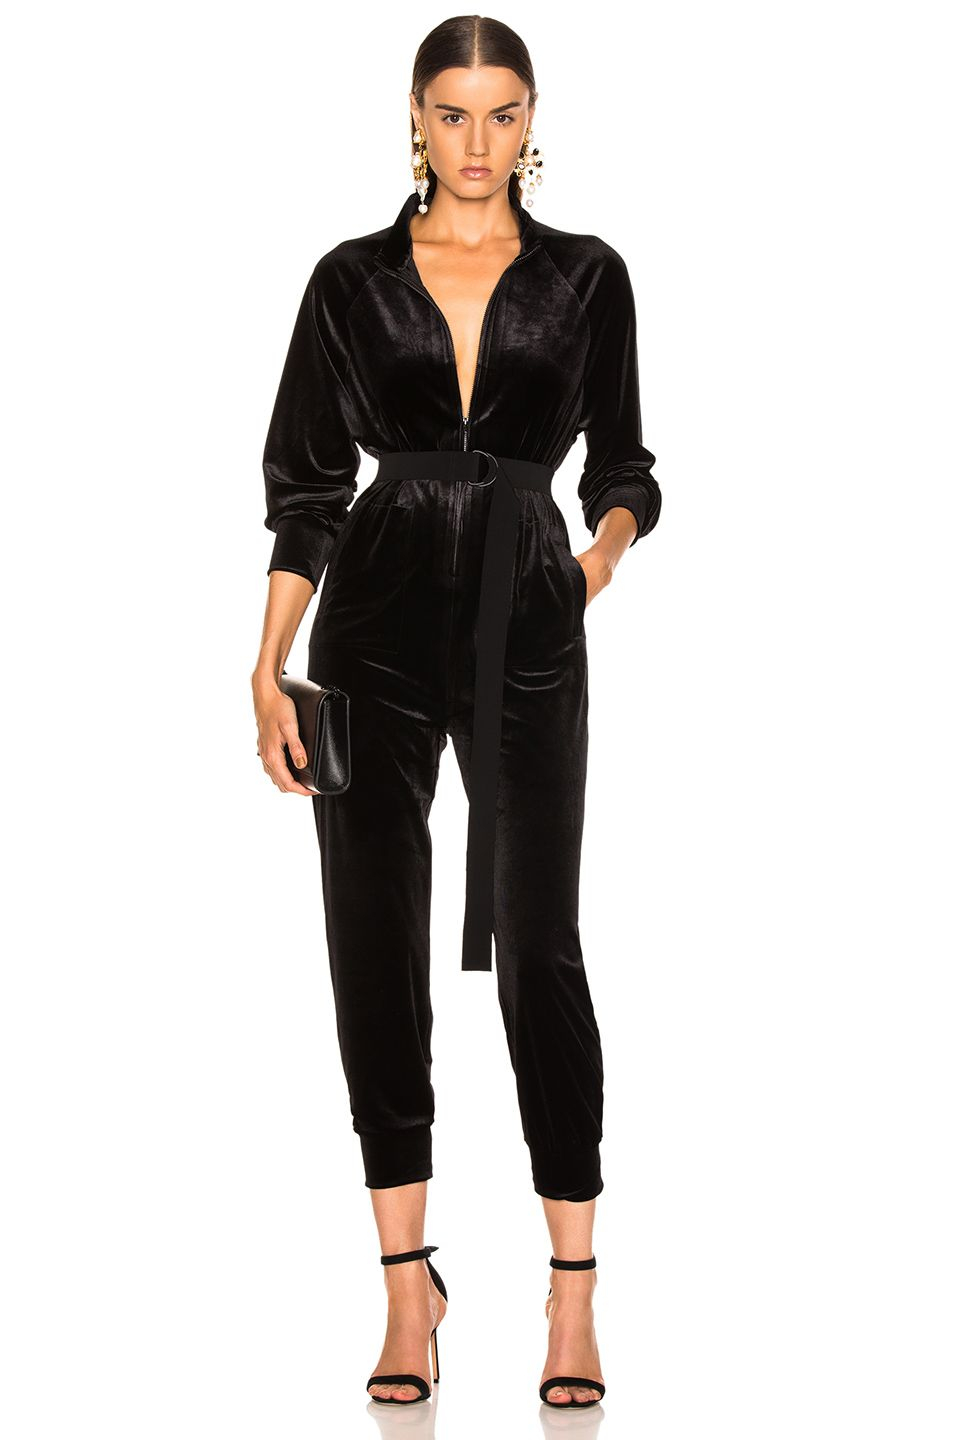 fdeb4277107a Image 1 of Norma Kamali Turtle Raglan Velvet Jumpsuit in Black ...